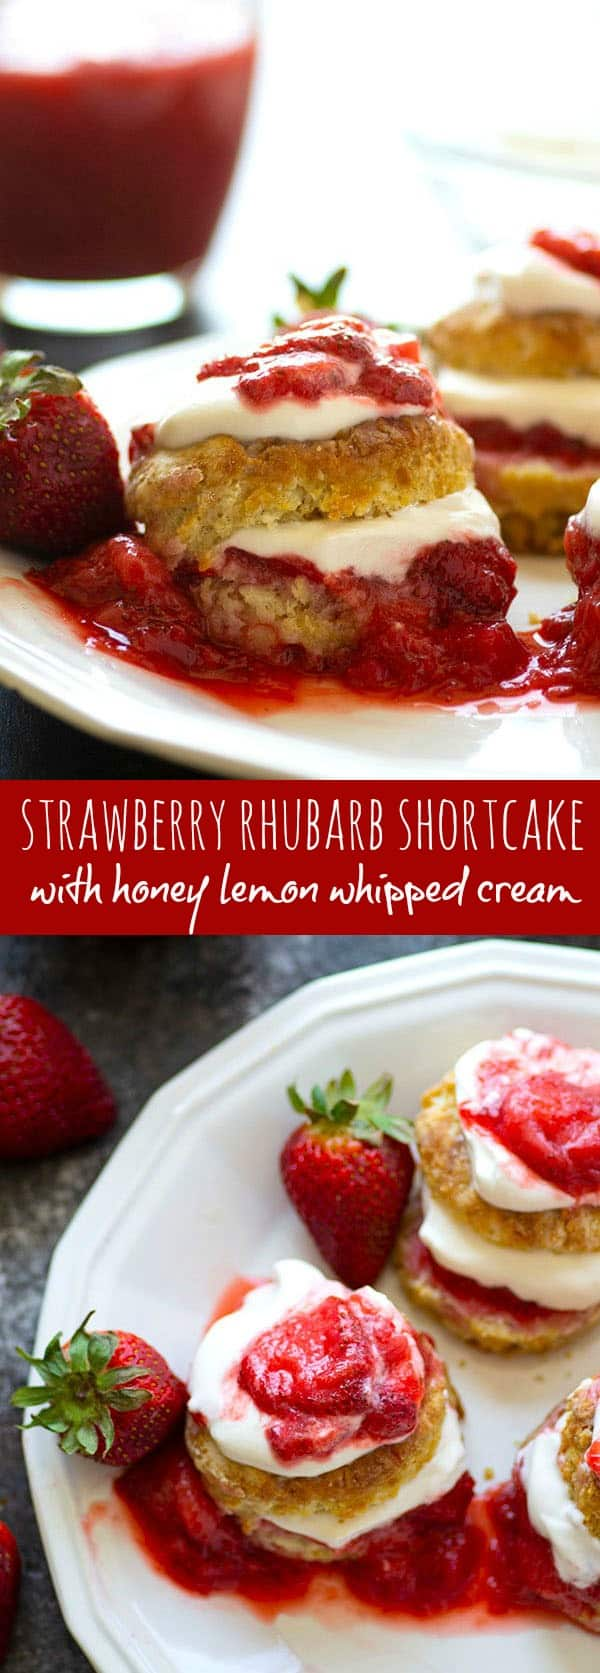 Strawberry rhubarb shortcake is the most amazing summer indulgence! Flaky homemade biscuits are filled with plenty of honey lemon whipped cream and tangy strawberry rhubarb sauce.